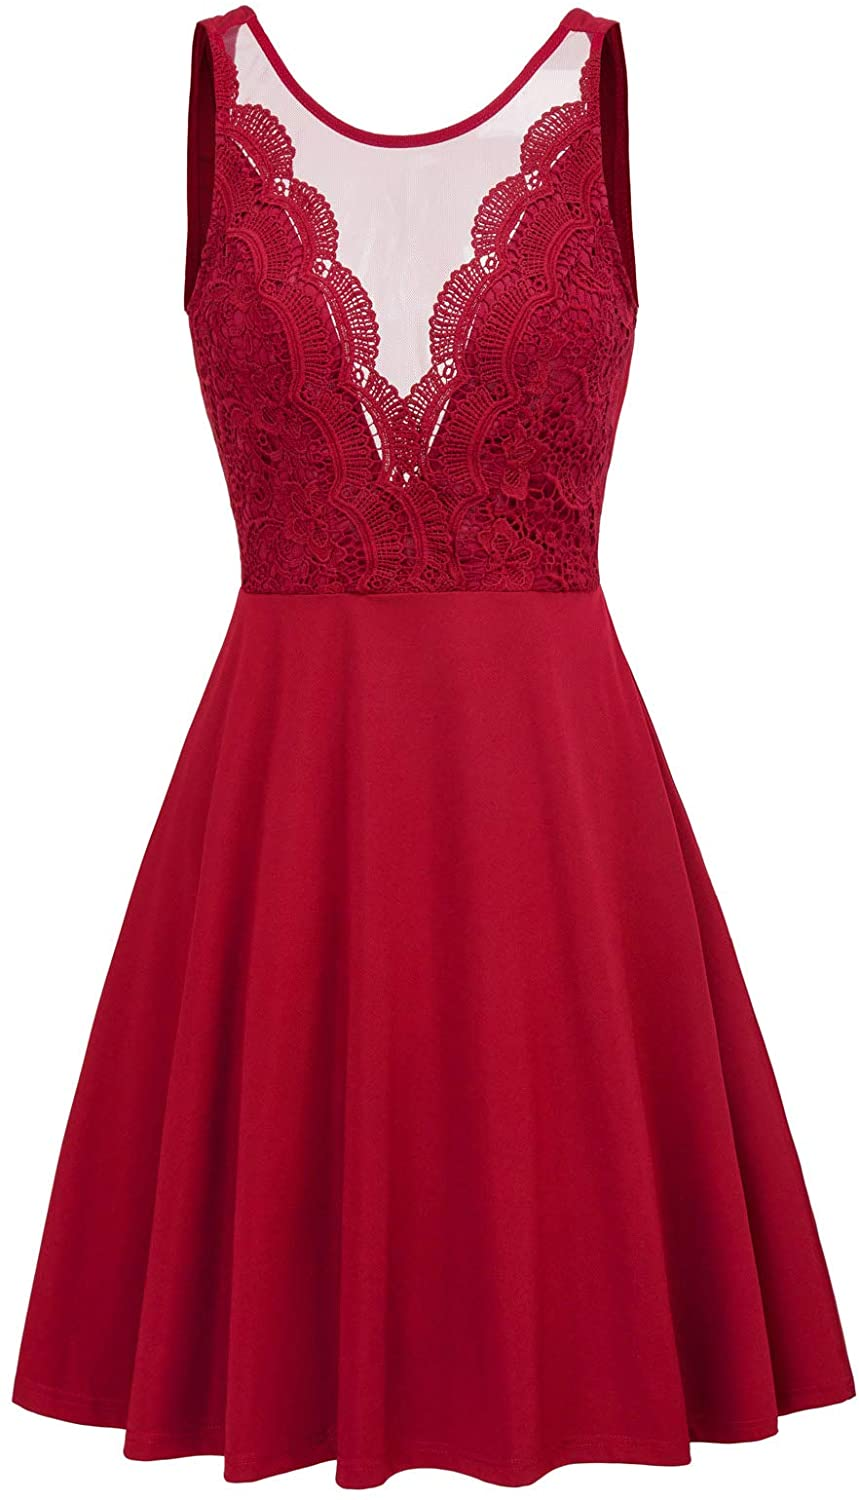 GRACE KARIN Women 1950s Lace Patchwork Fancy Party Dress Sleeveless A-Line Flared Dance Cocktail Dress